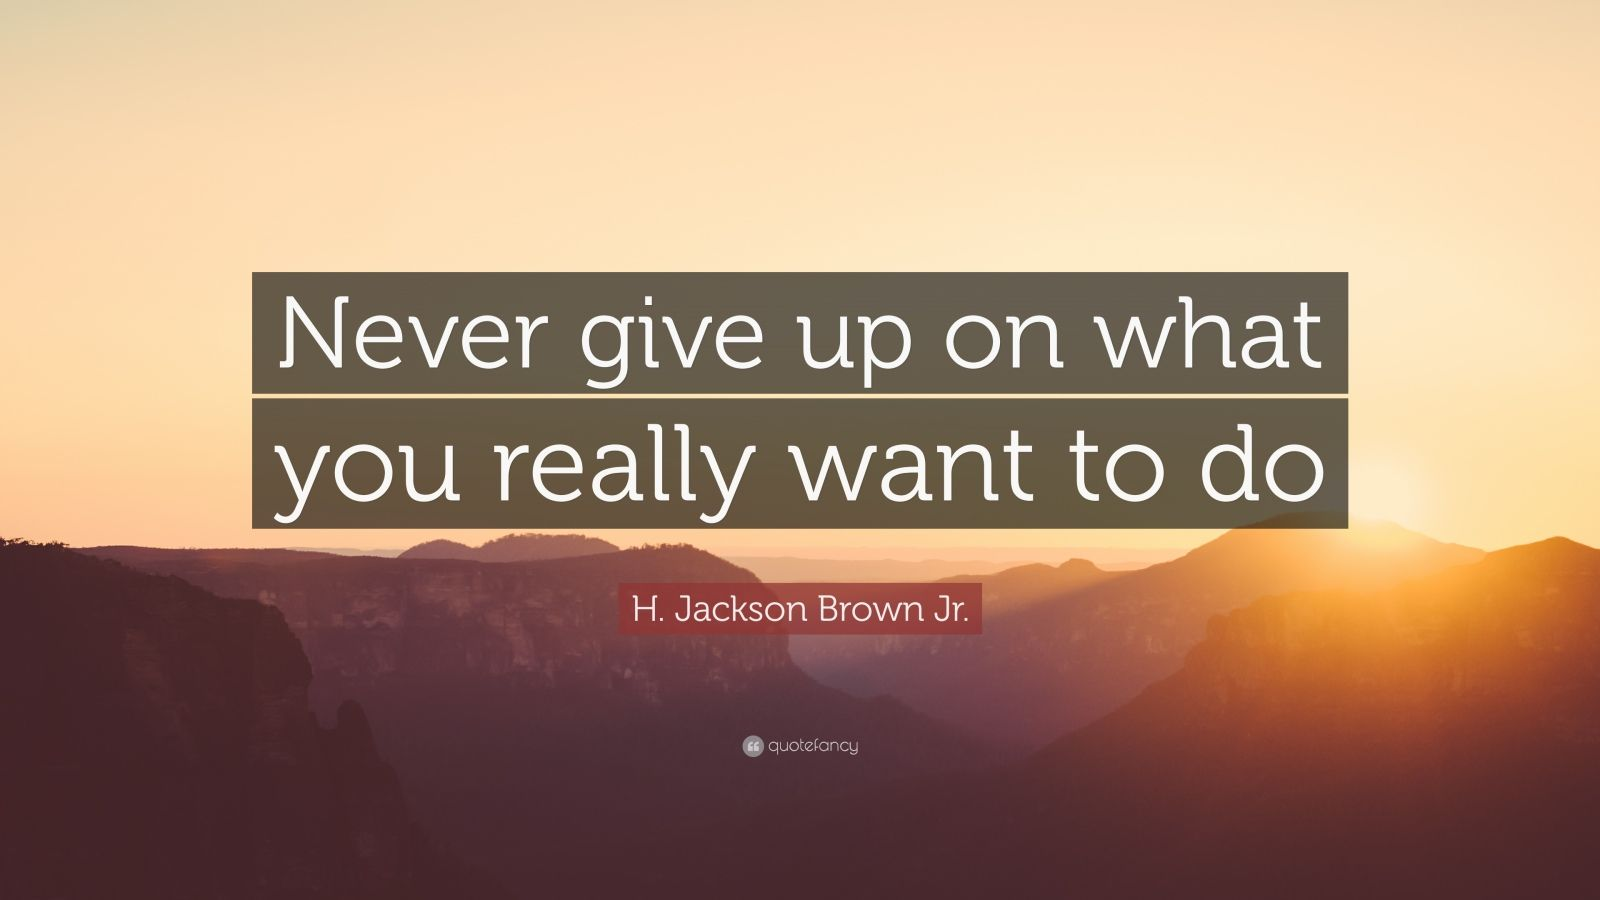 Business Success Quotes Wallpaper H Jackson Brown Jr Quote Never Give Up On What You